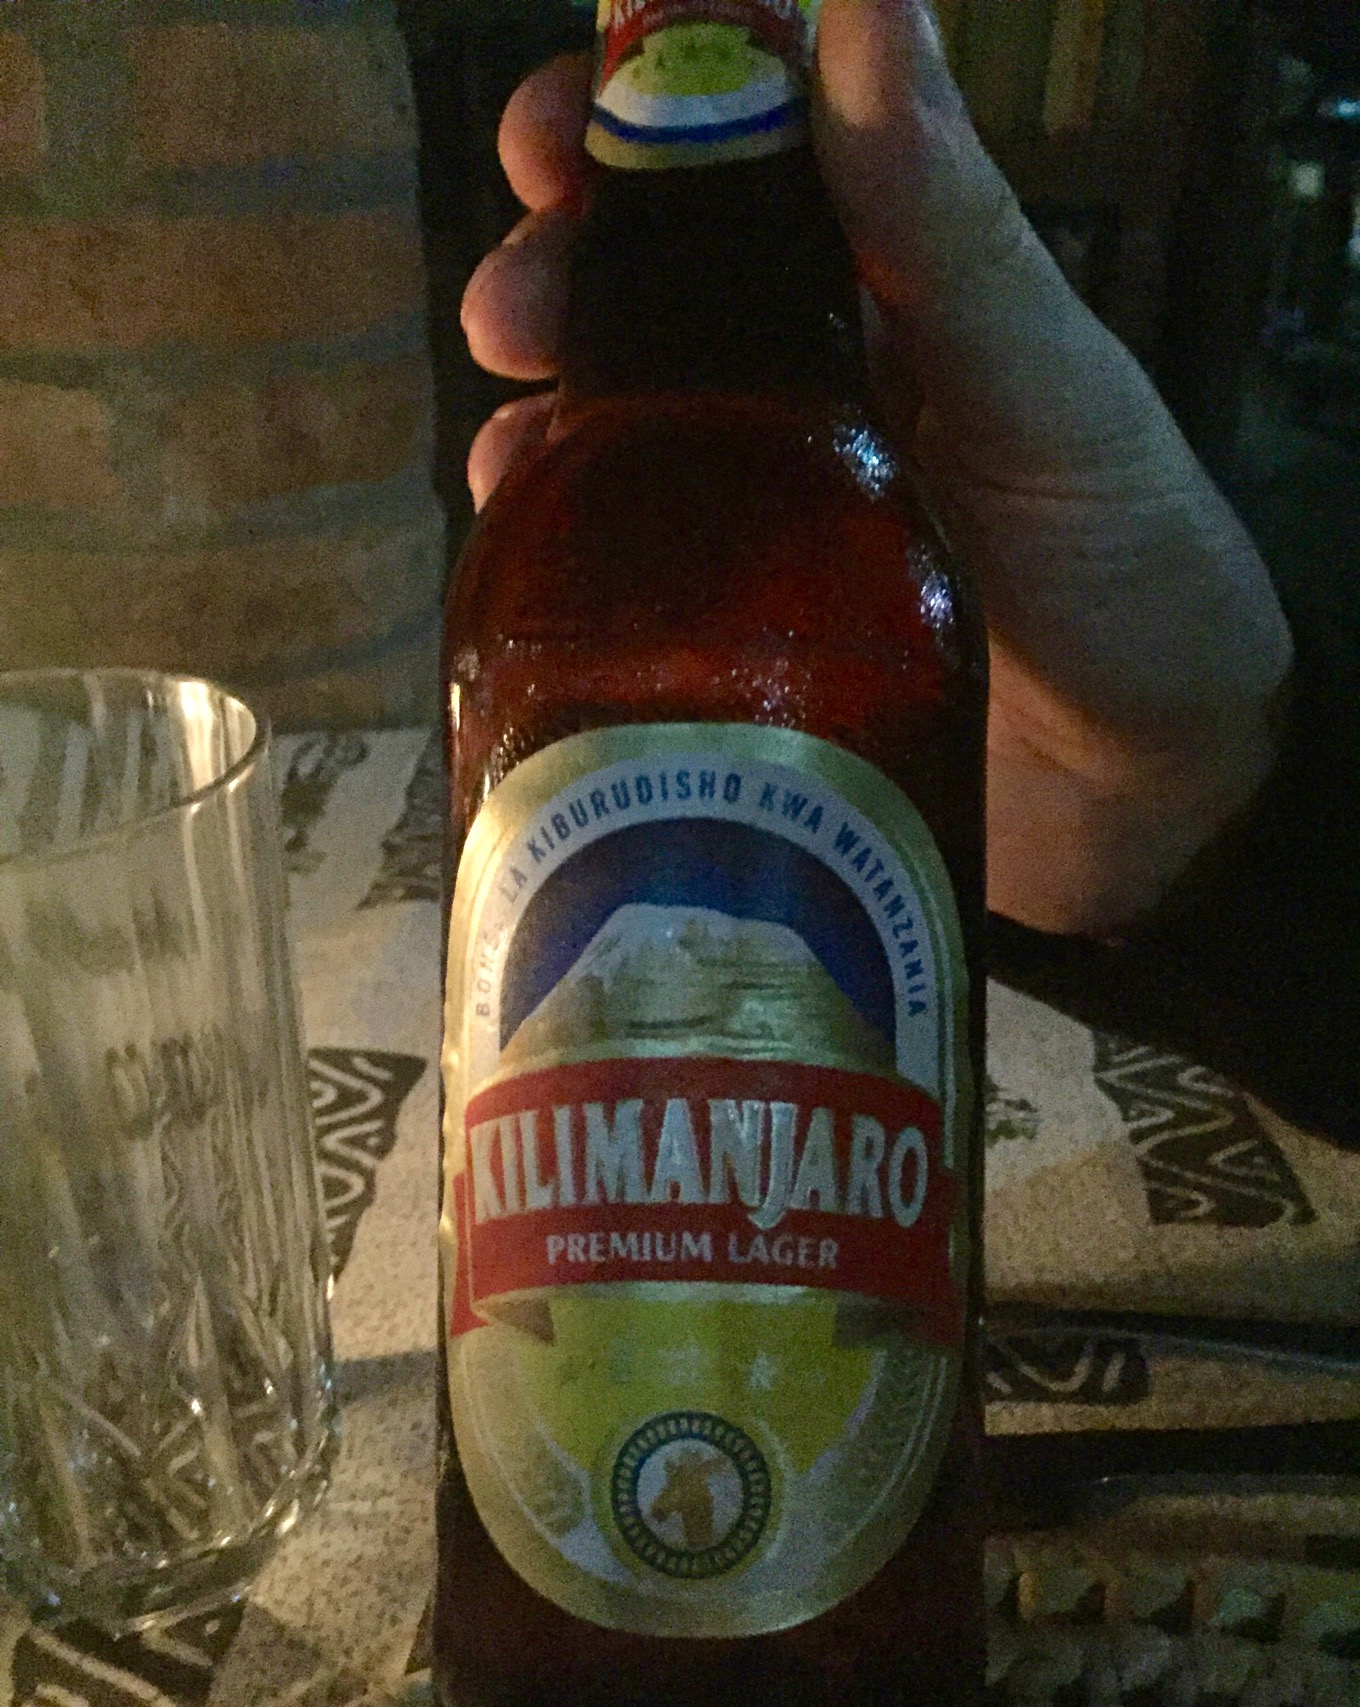 Kilimanjaro beer for dinner at Ambureni Coffee Lodge